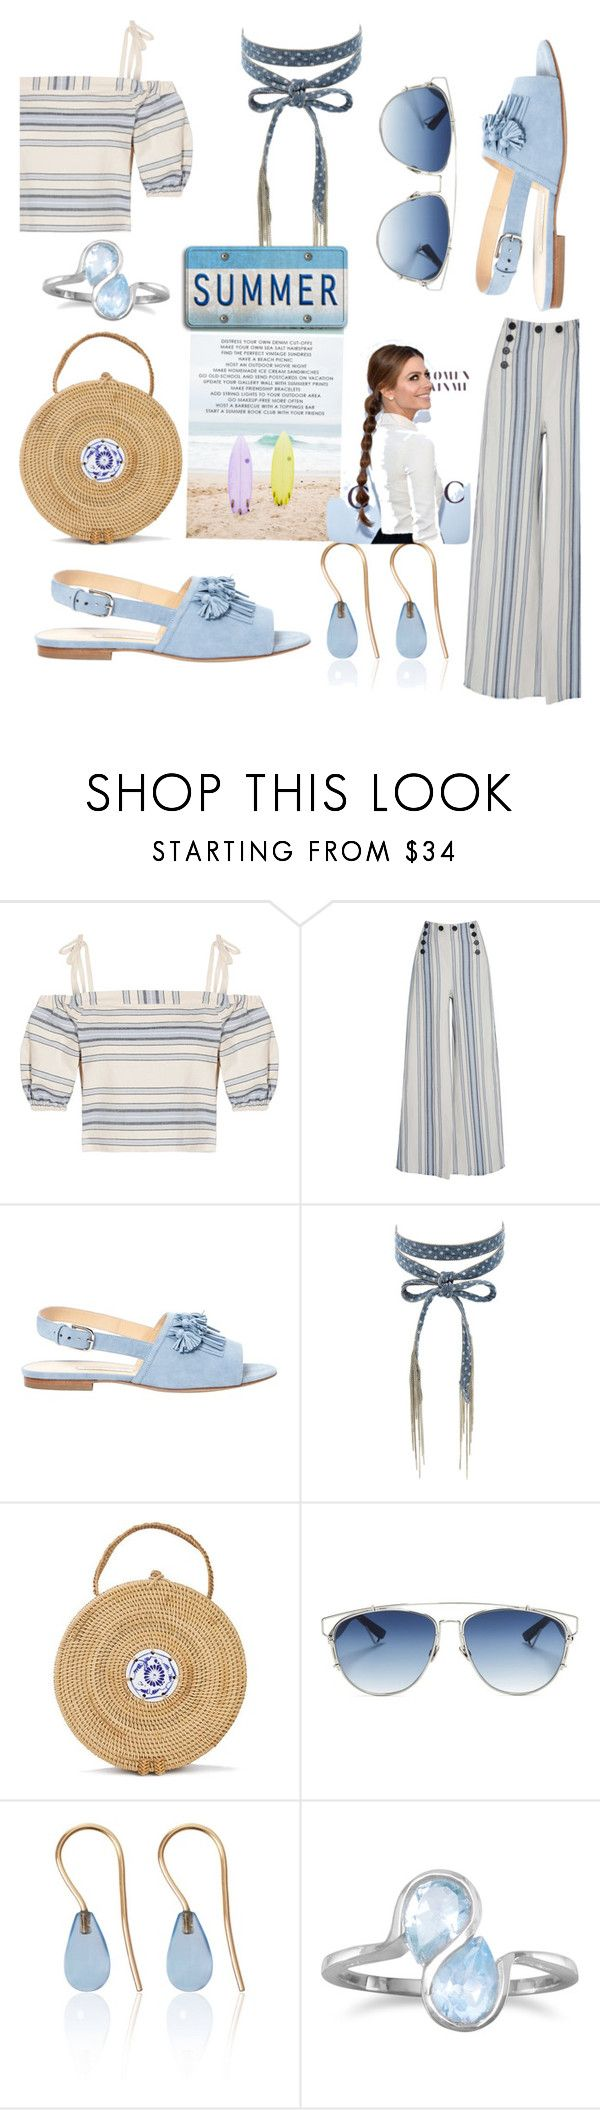 """Summer Chillin"" by mdfletch ❤ liked on Polyvore featuring Lemlem, Bionda Castana, Chan Luu, Christian Dior, Love Is, BillyTheTree and summerchillin"